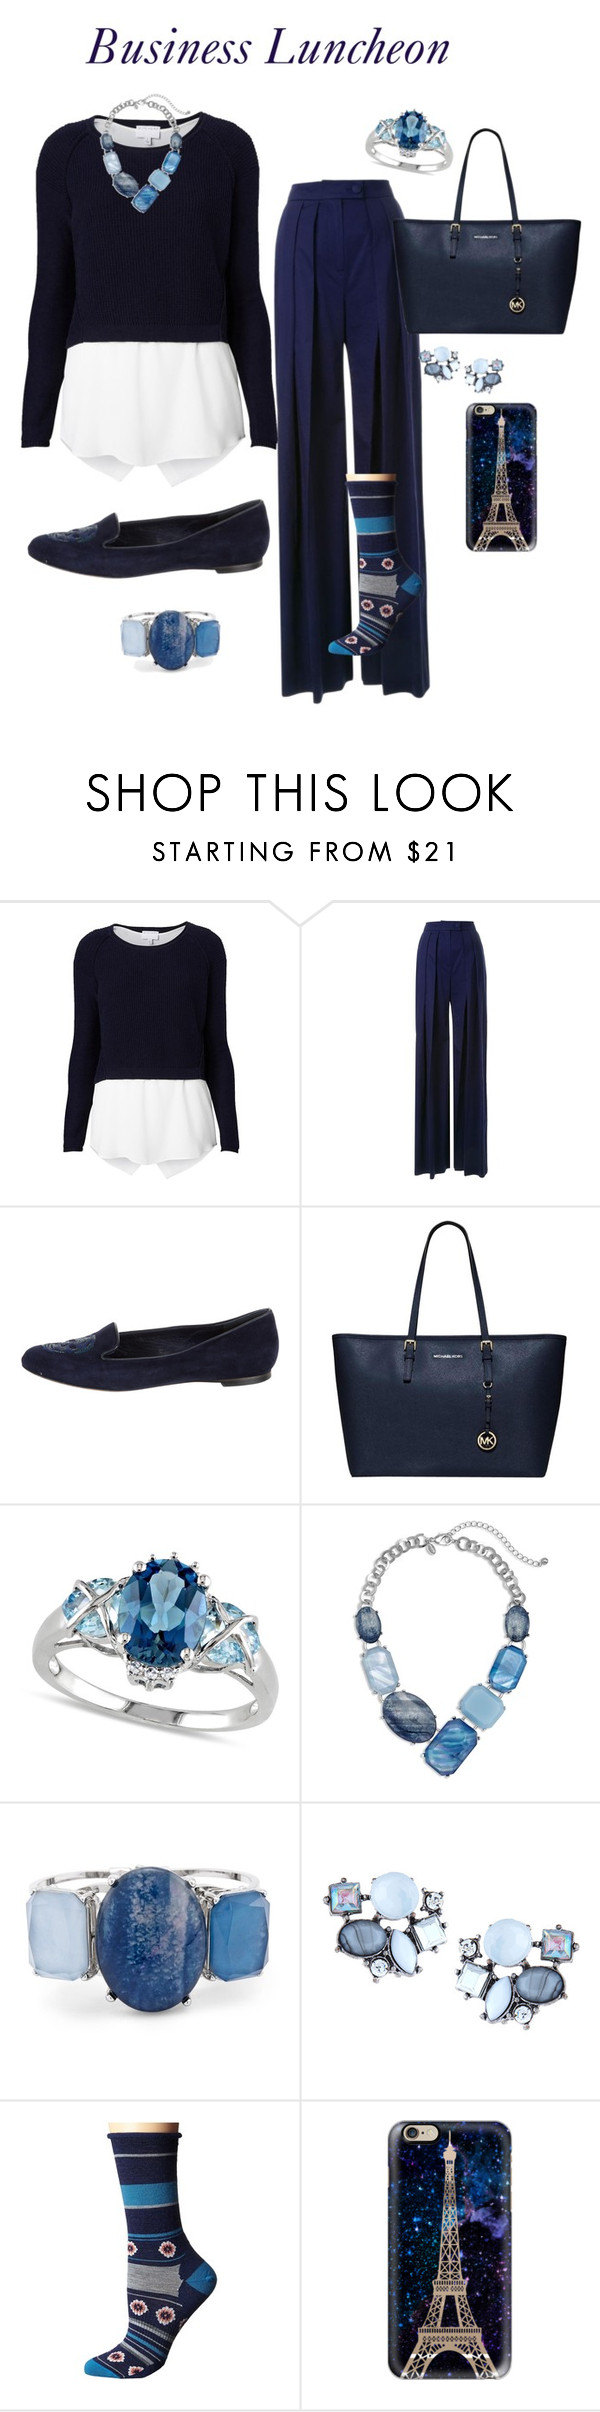 """""""Business Luncheon"""" by sommer-reign ❤ liked on Polyvore featuring Witchery, Martin Grant, Alexander McQueen, Allurez, Chico's, Lydell NYC, Smartwool and Casetify"""